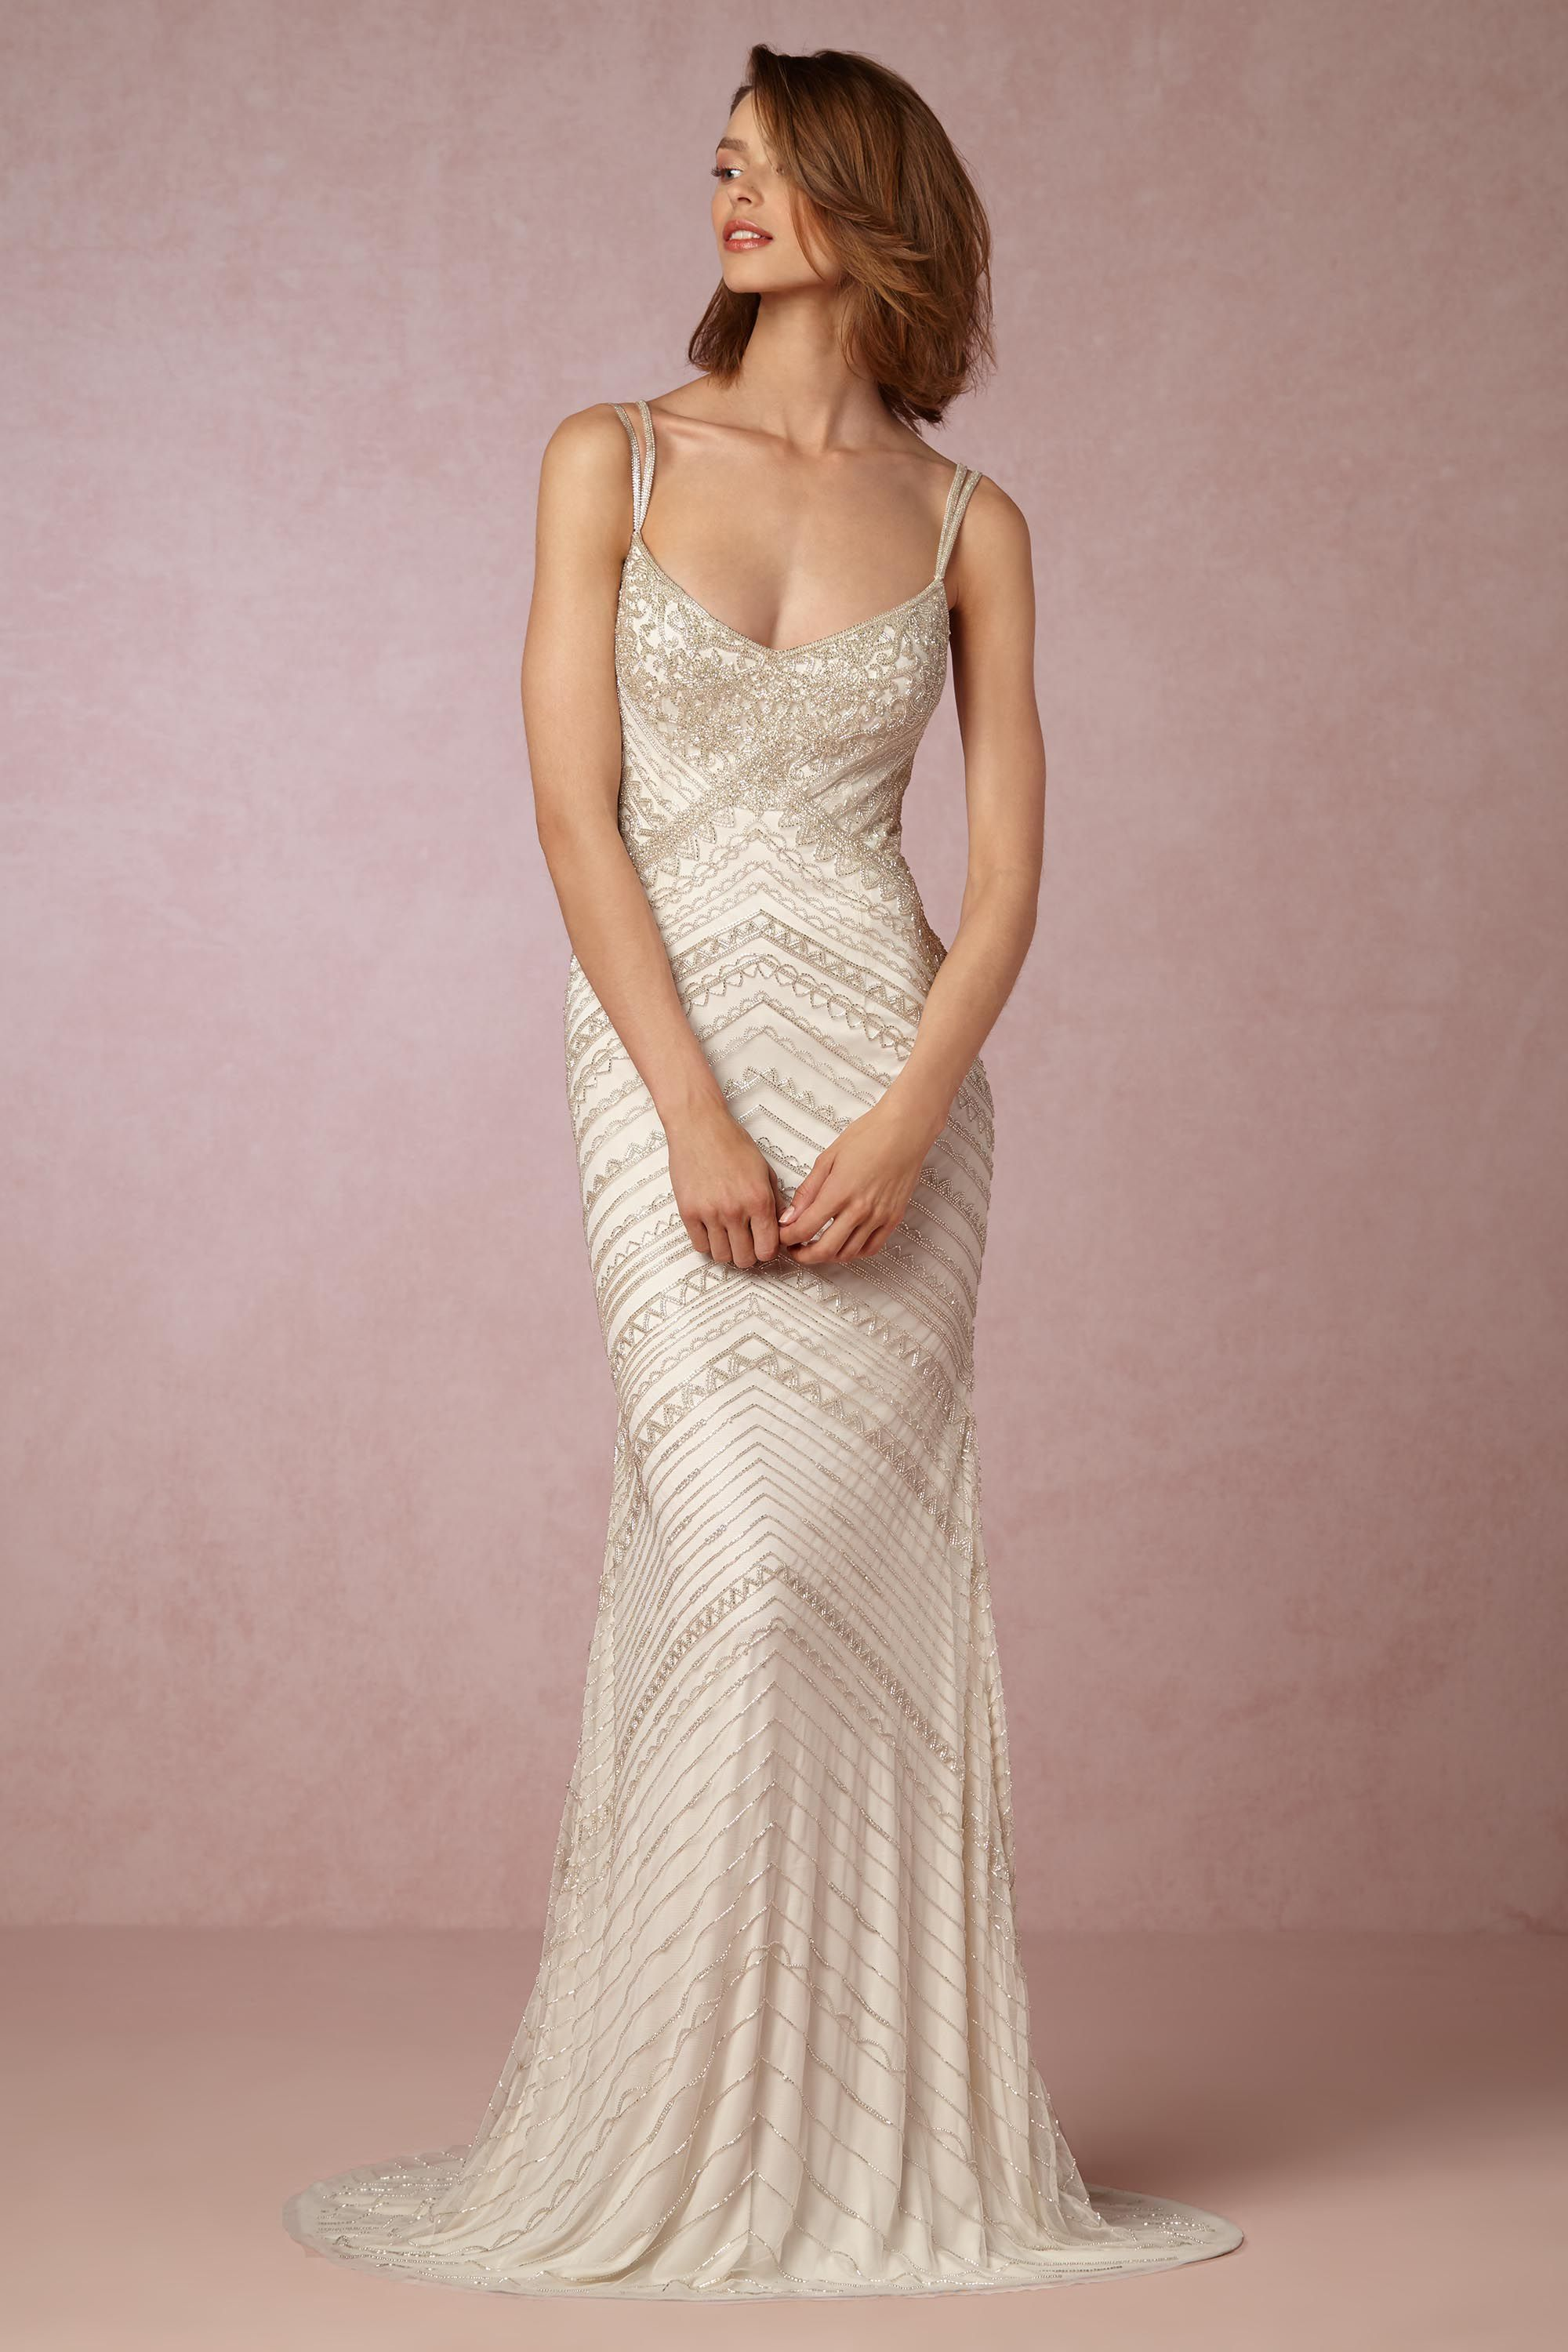 Sequin wedding dress - Joslyn Gown from @BHLDN | When i do ...